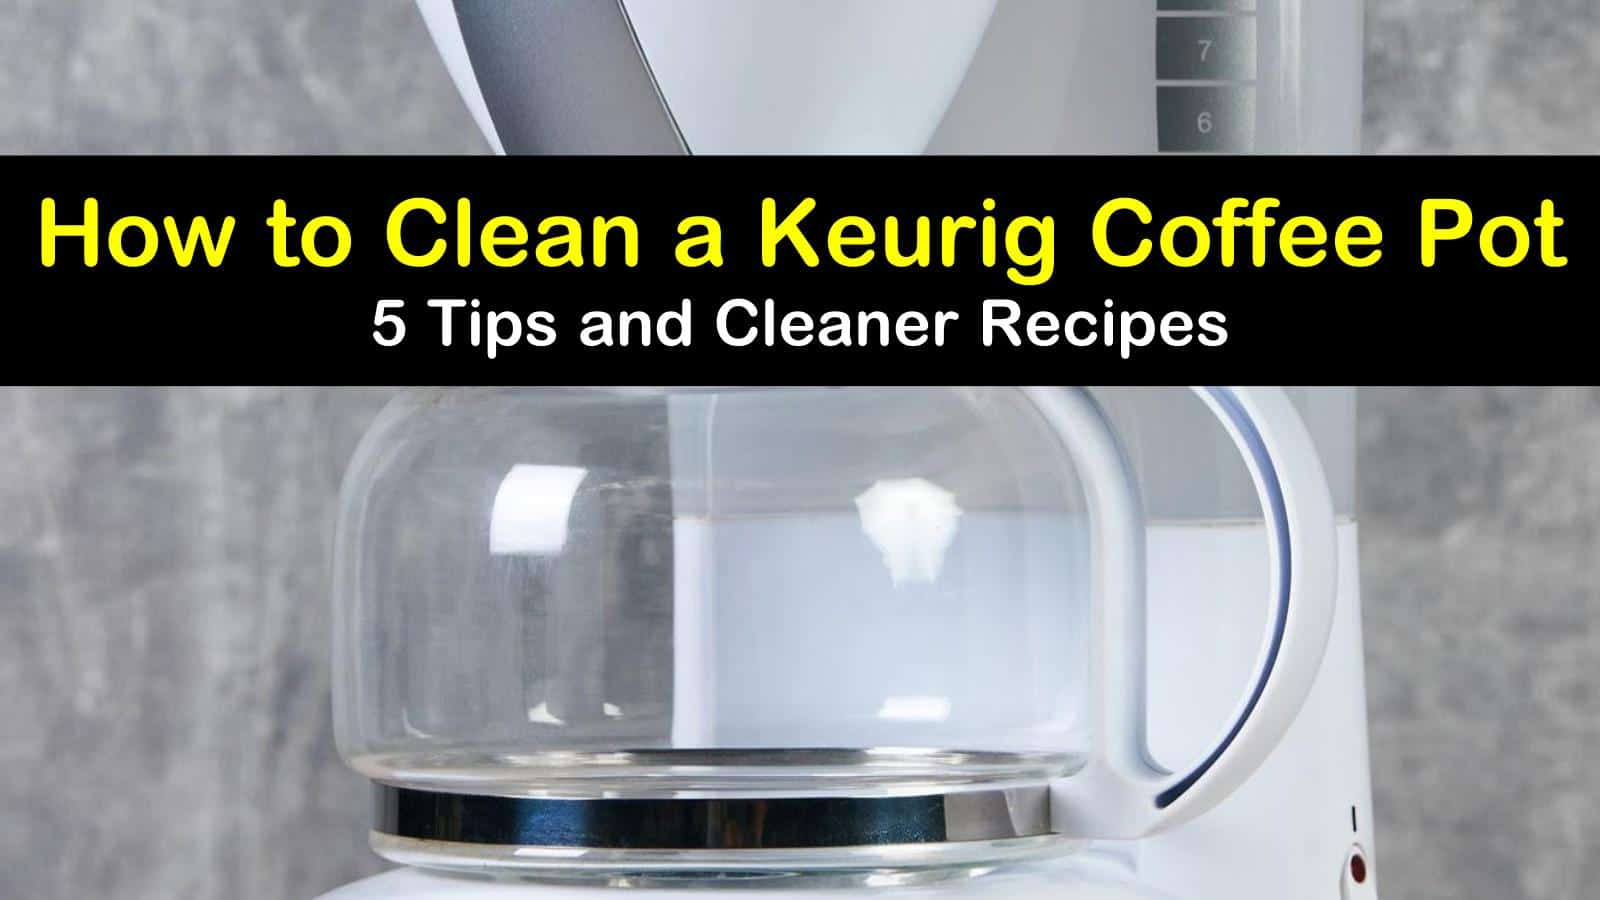 how to clean a keurig coffee pot titleimg1